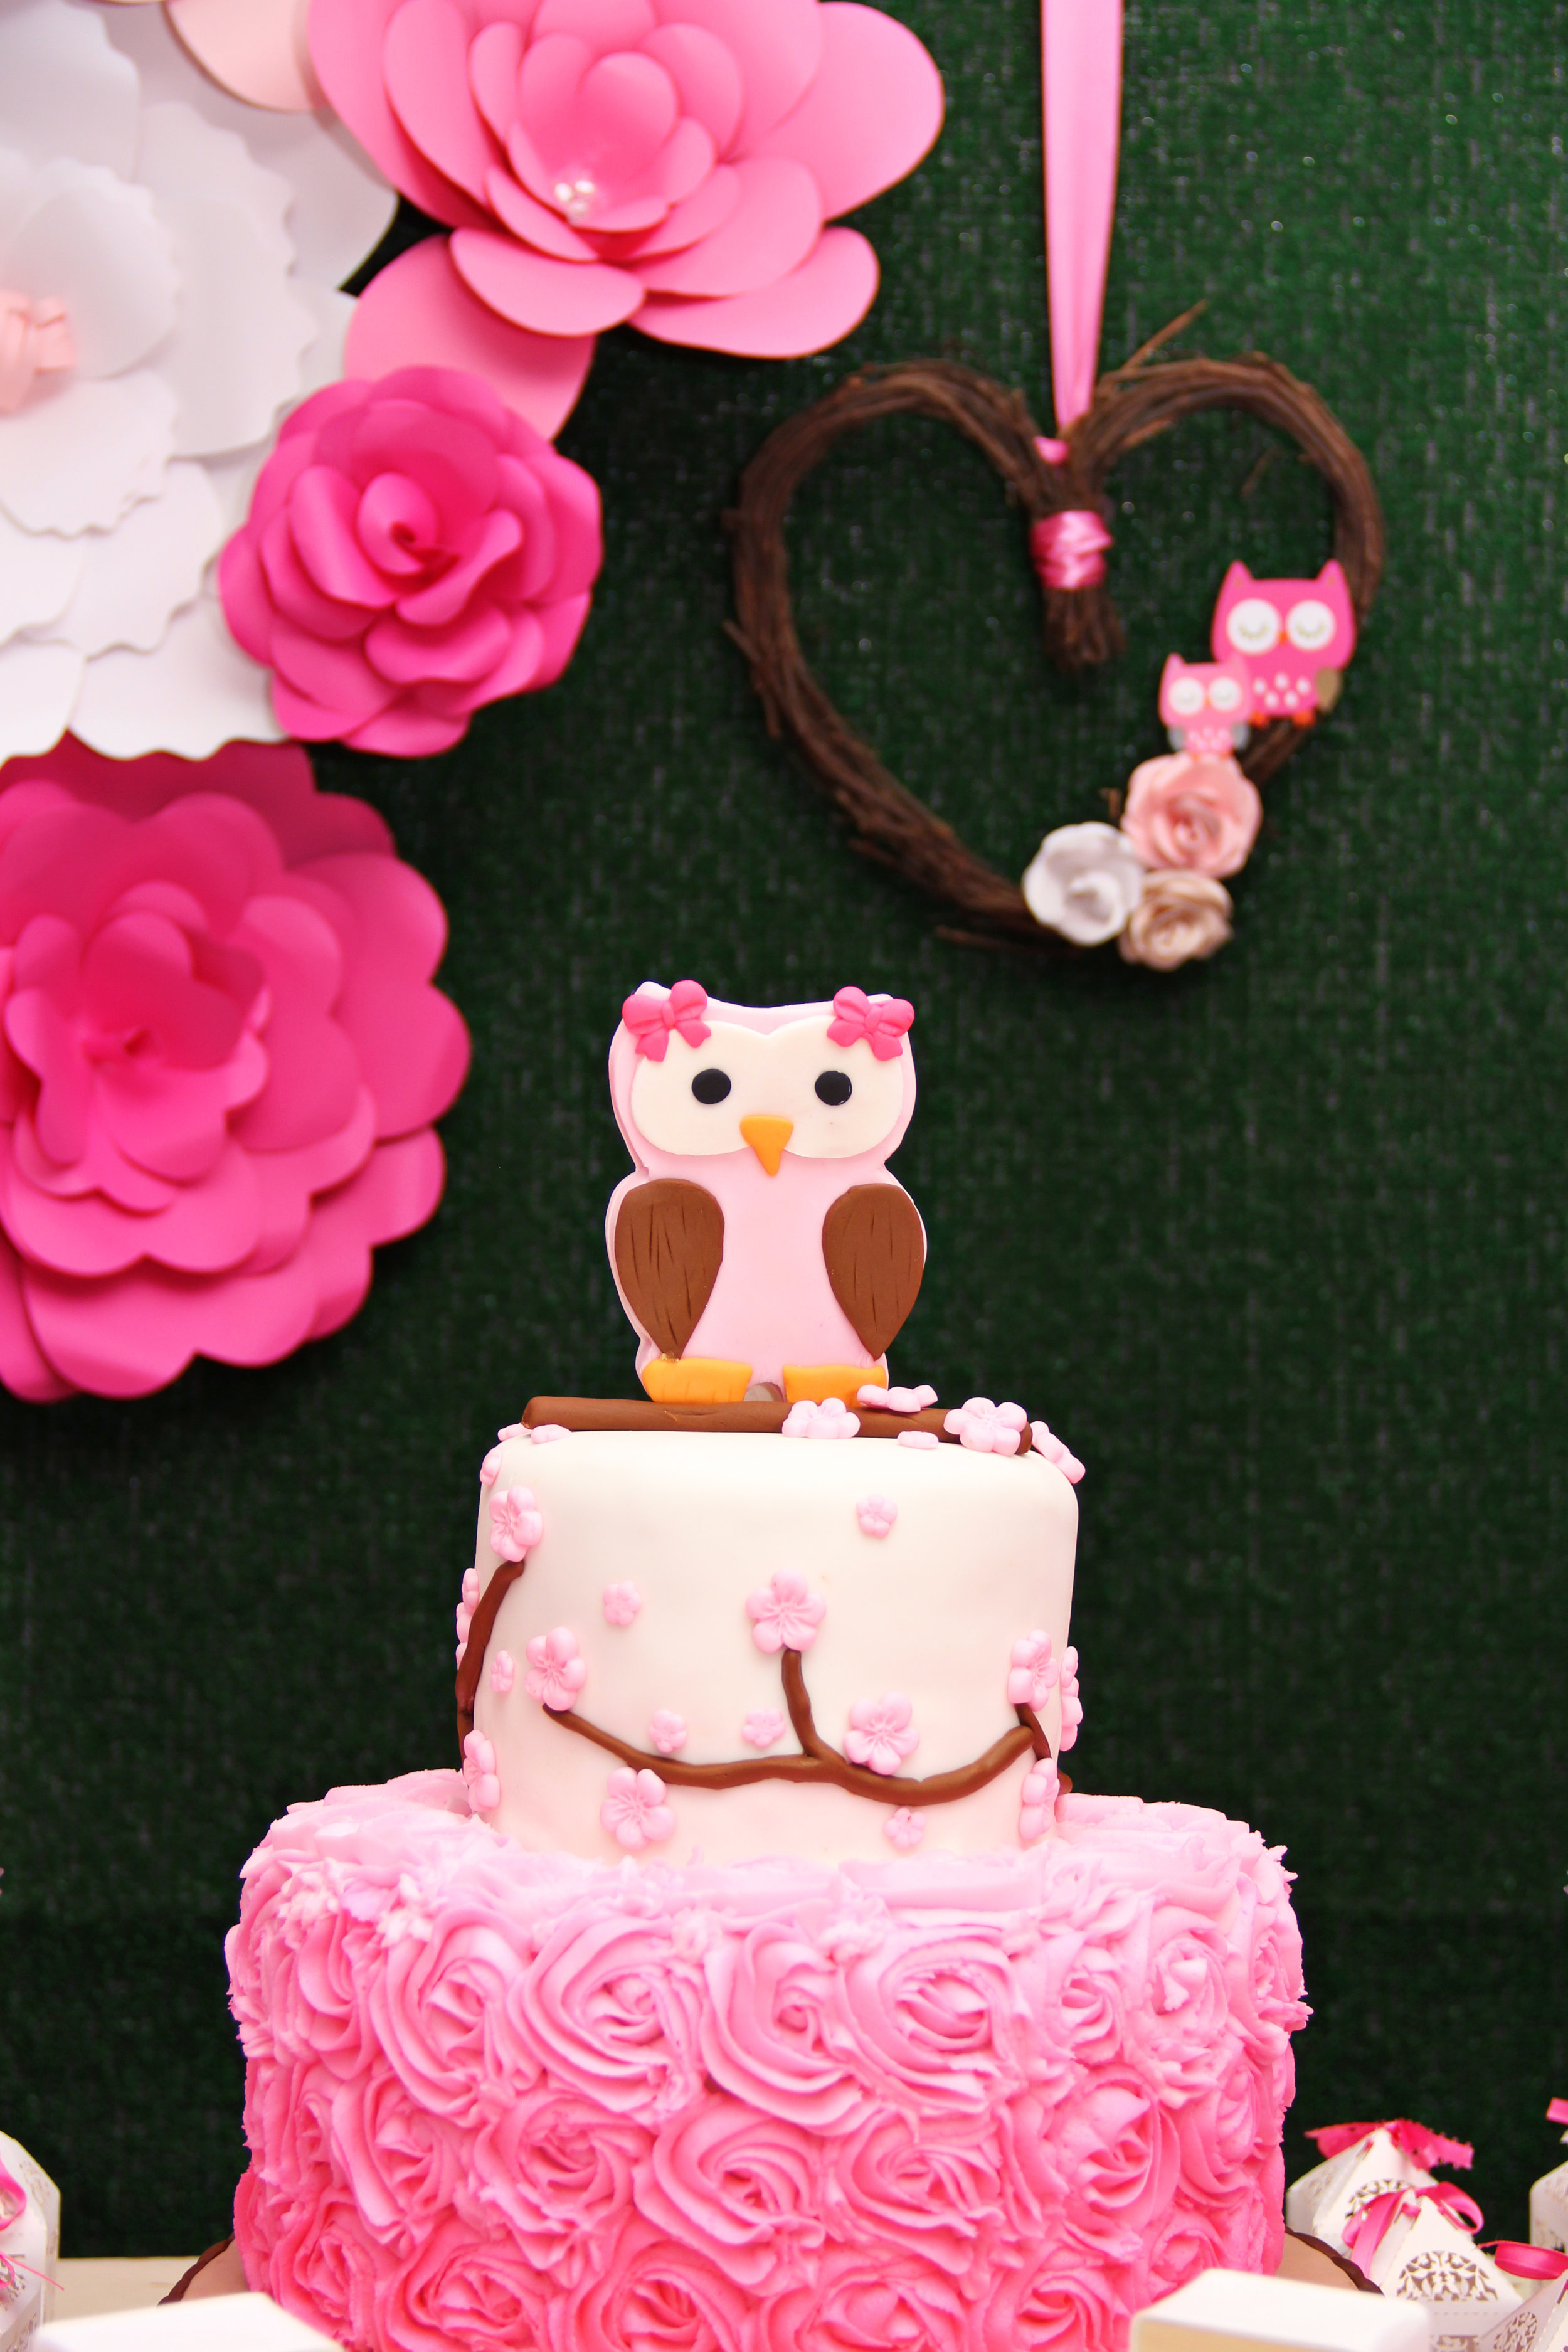 Scar-Vita-Photography-2016-Copyright-Owl-Baby-Shower-Events-By-Cat-3.JPG